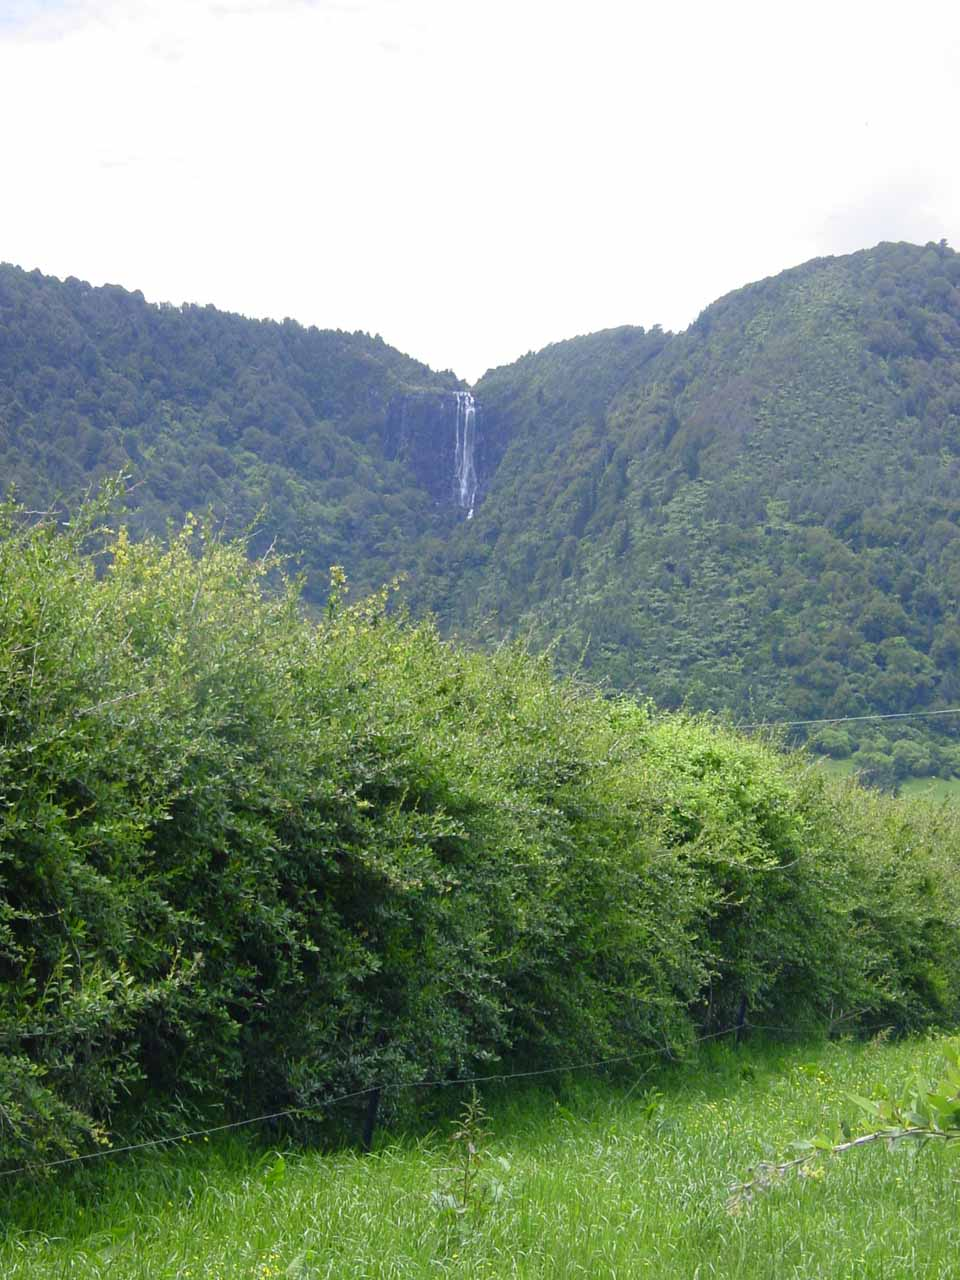 Looking back at Wairere Falls from within the Waikato Plains